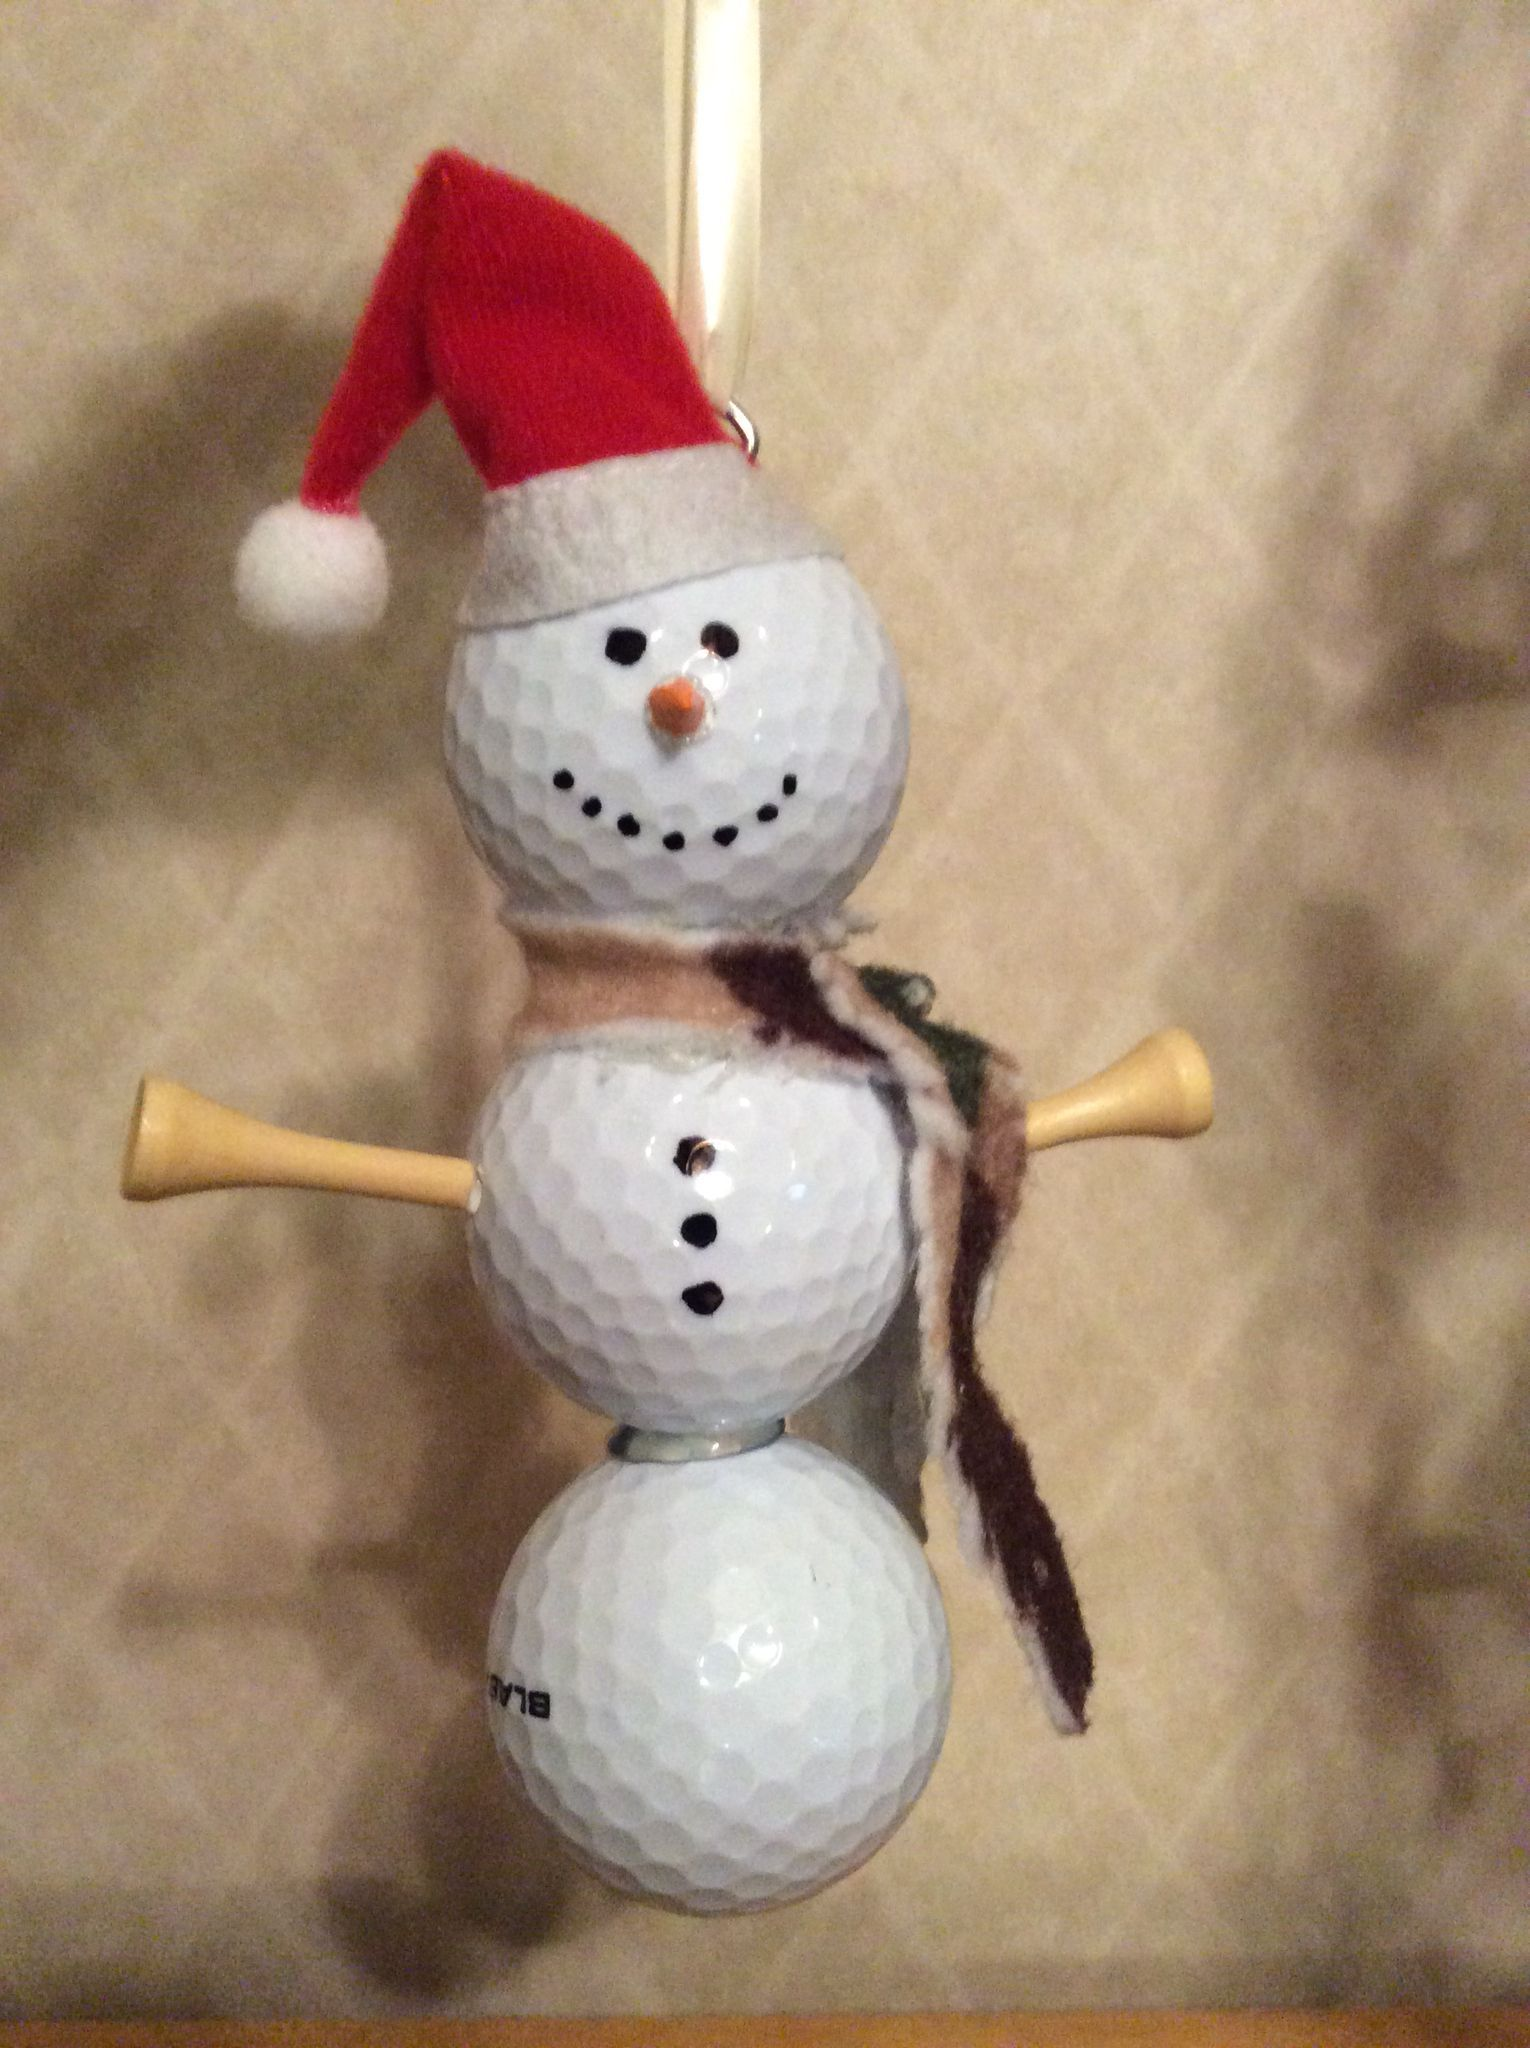 3 Top Ideas For Great Golf Gifts Crafts Christmas Ornaments